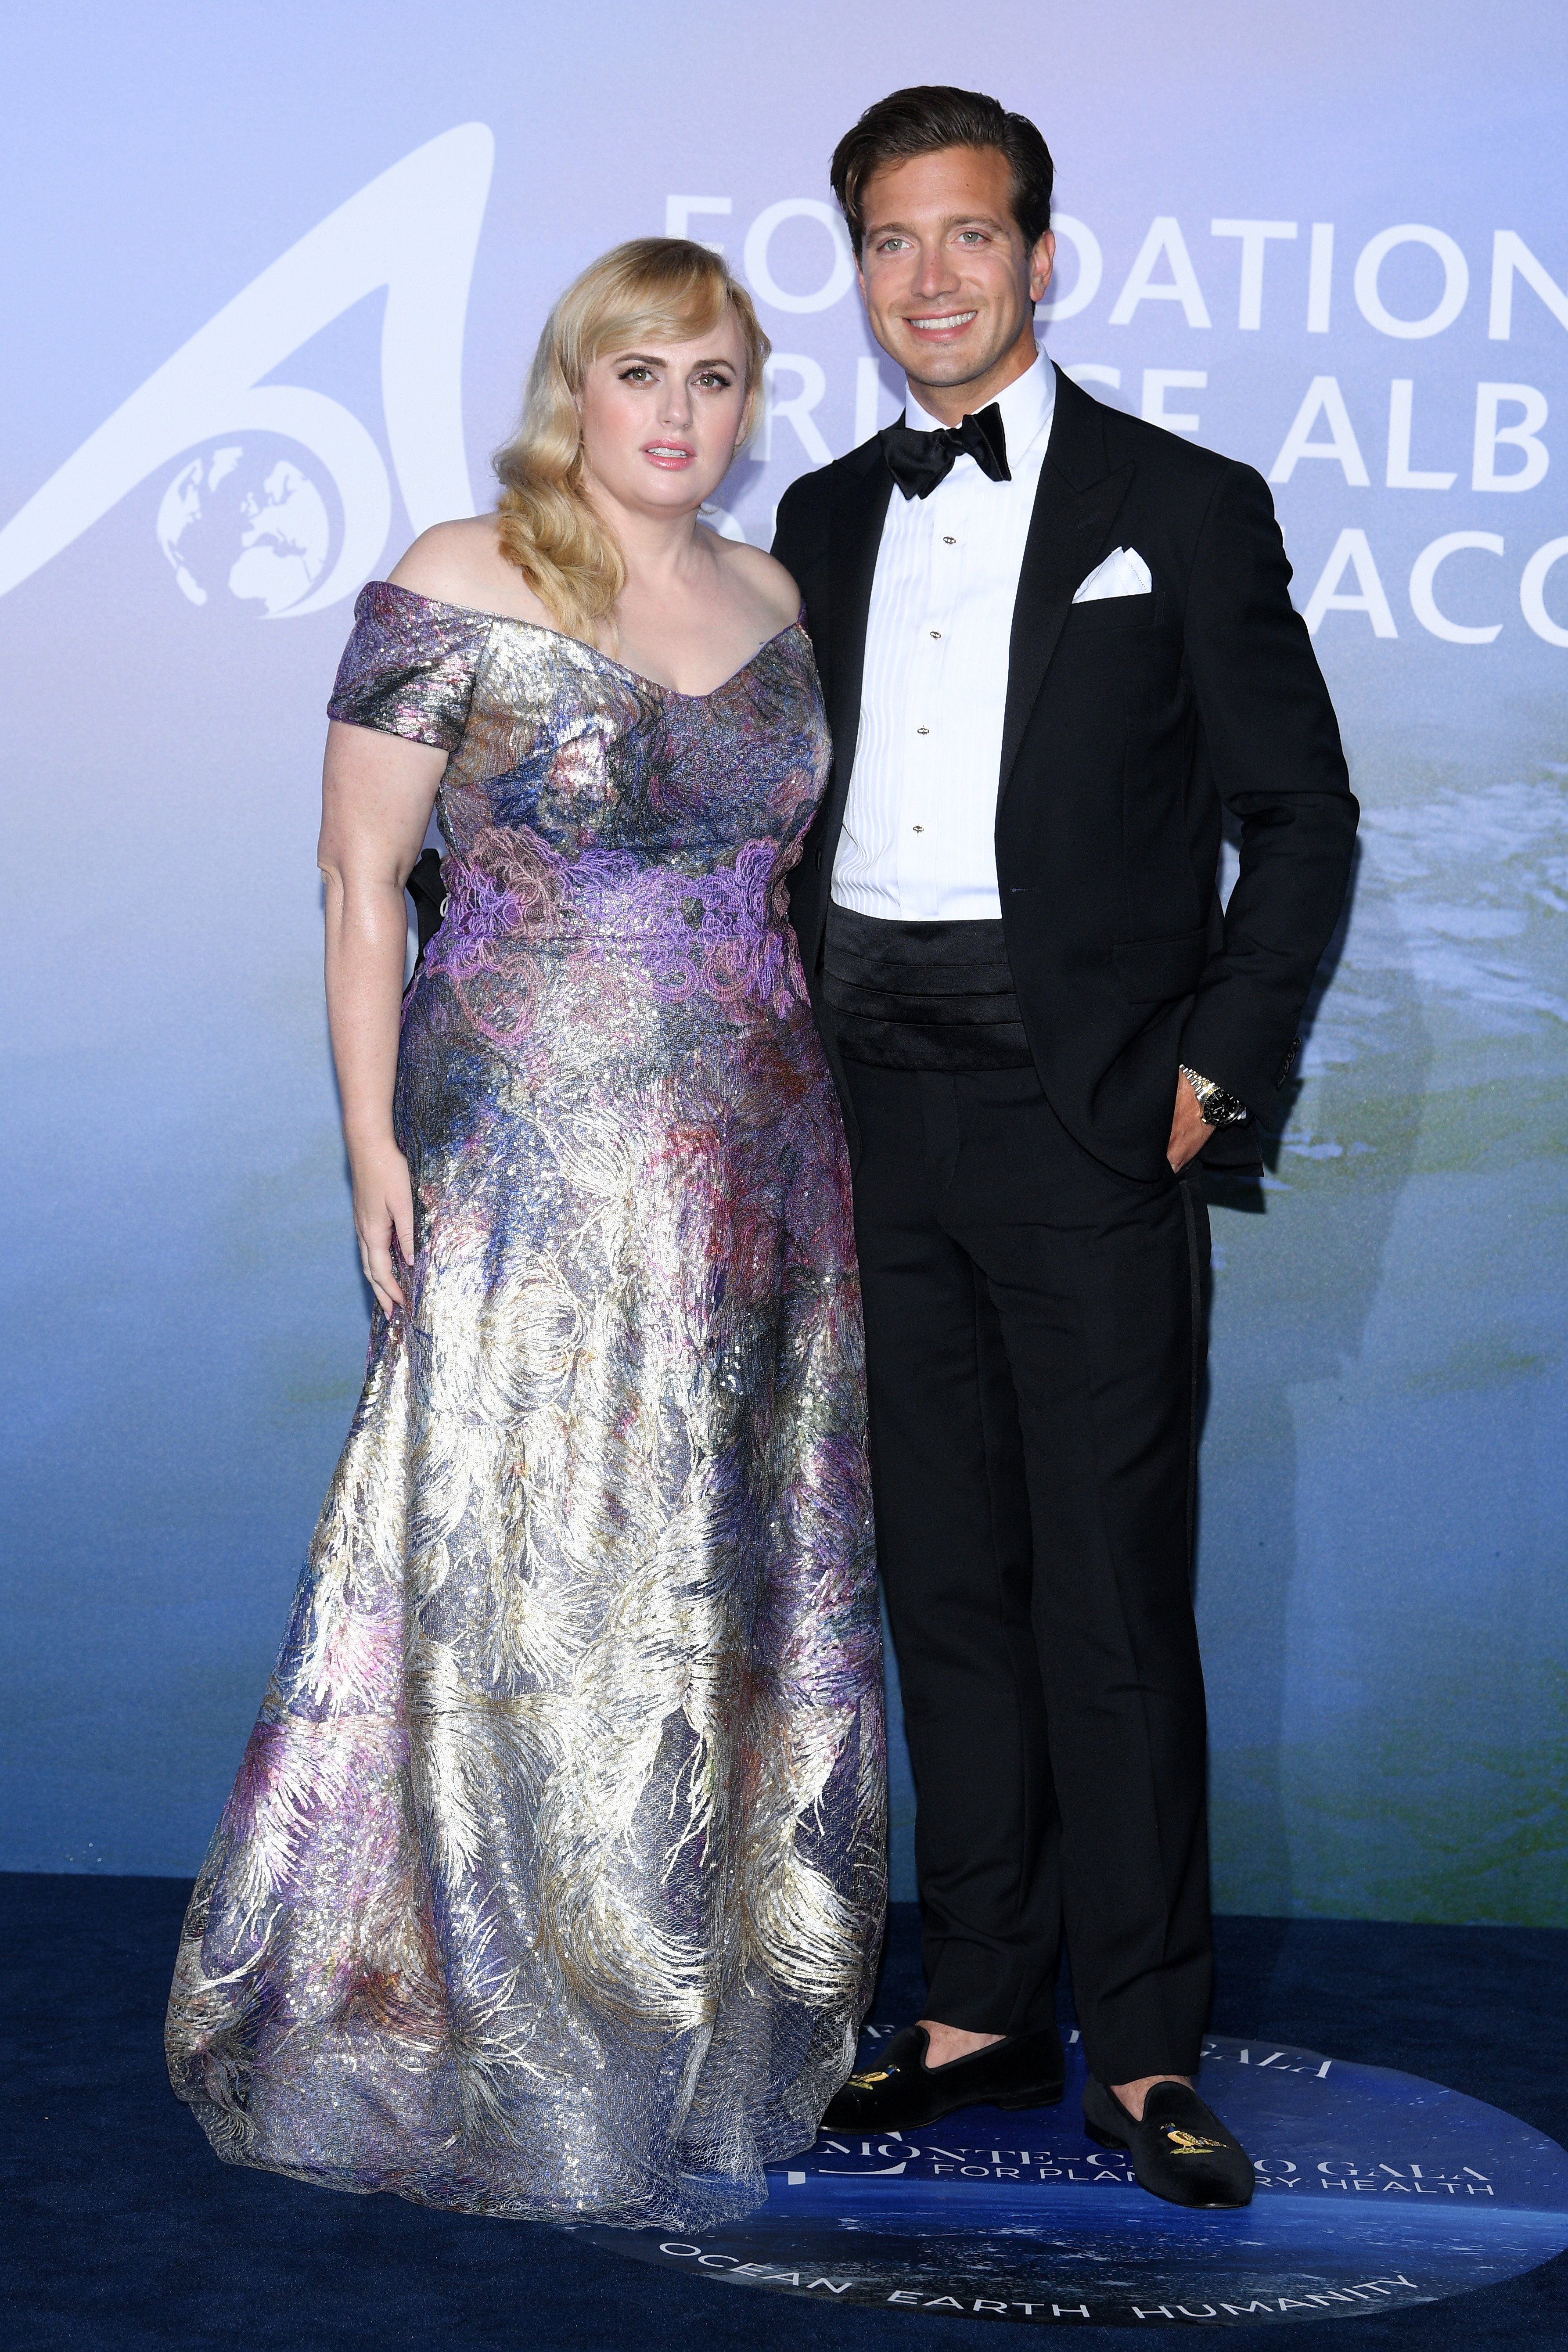 Rebel WIlson and Jacob Busch attend the Monte-Carlo Gala for Planetary Health in Monaco on September 24, 2020 | Photo: Getty Images